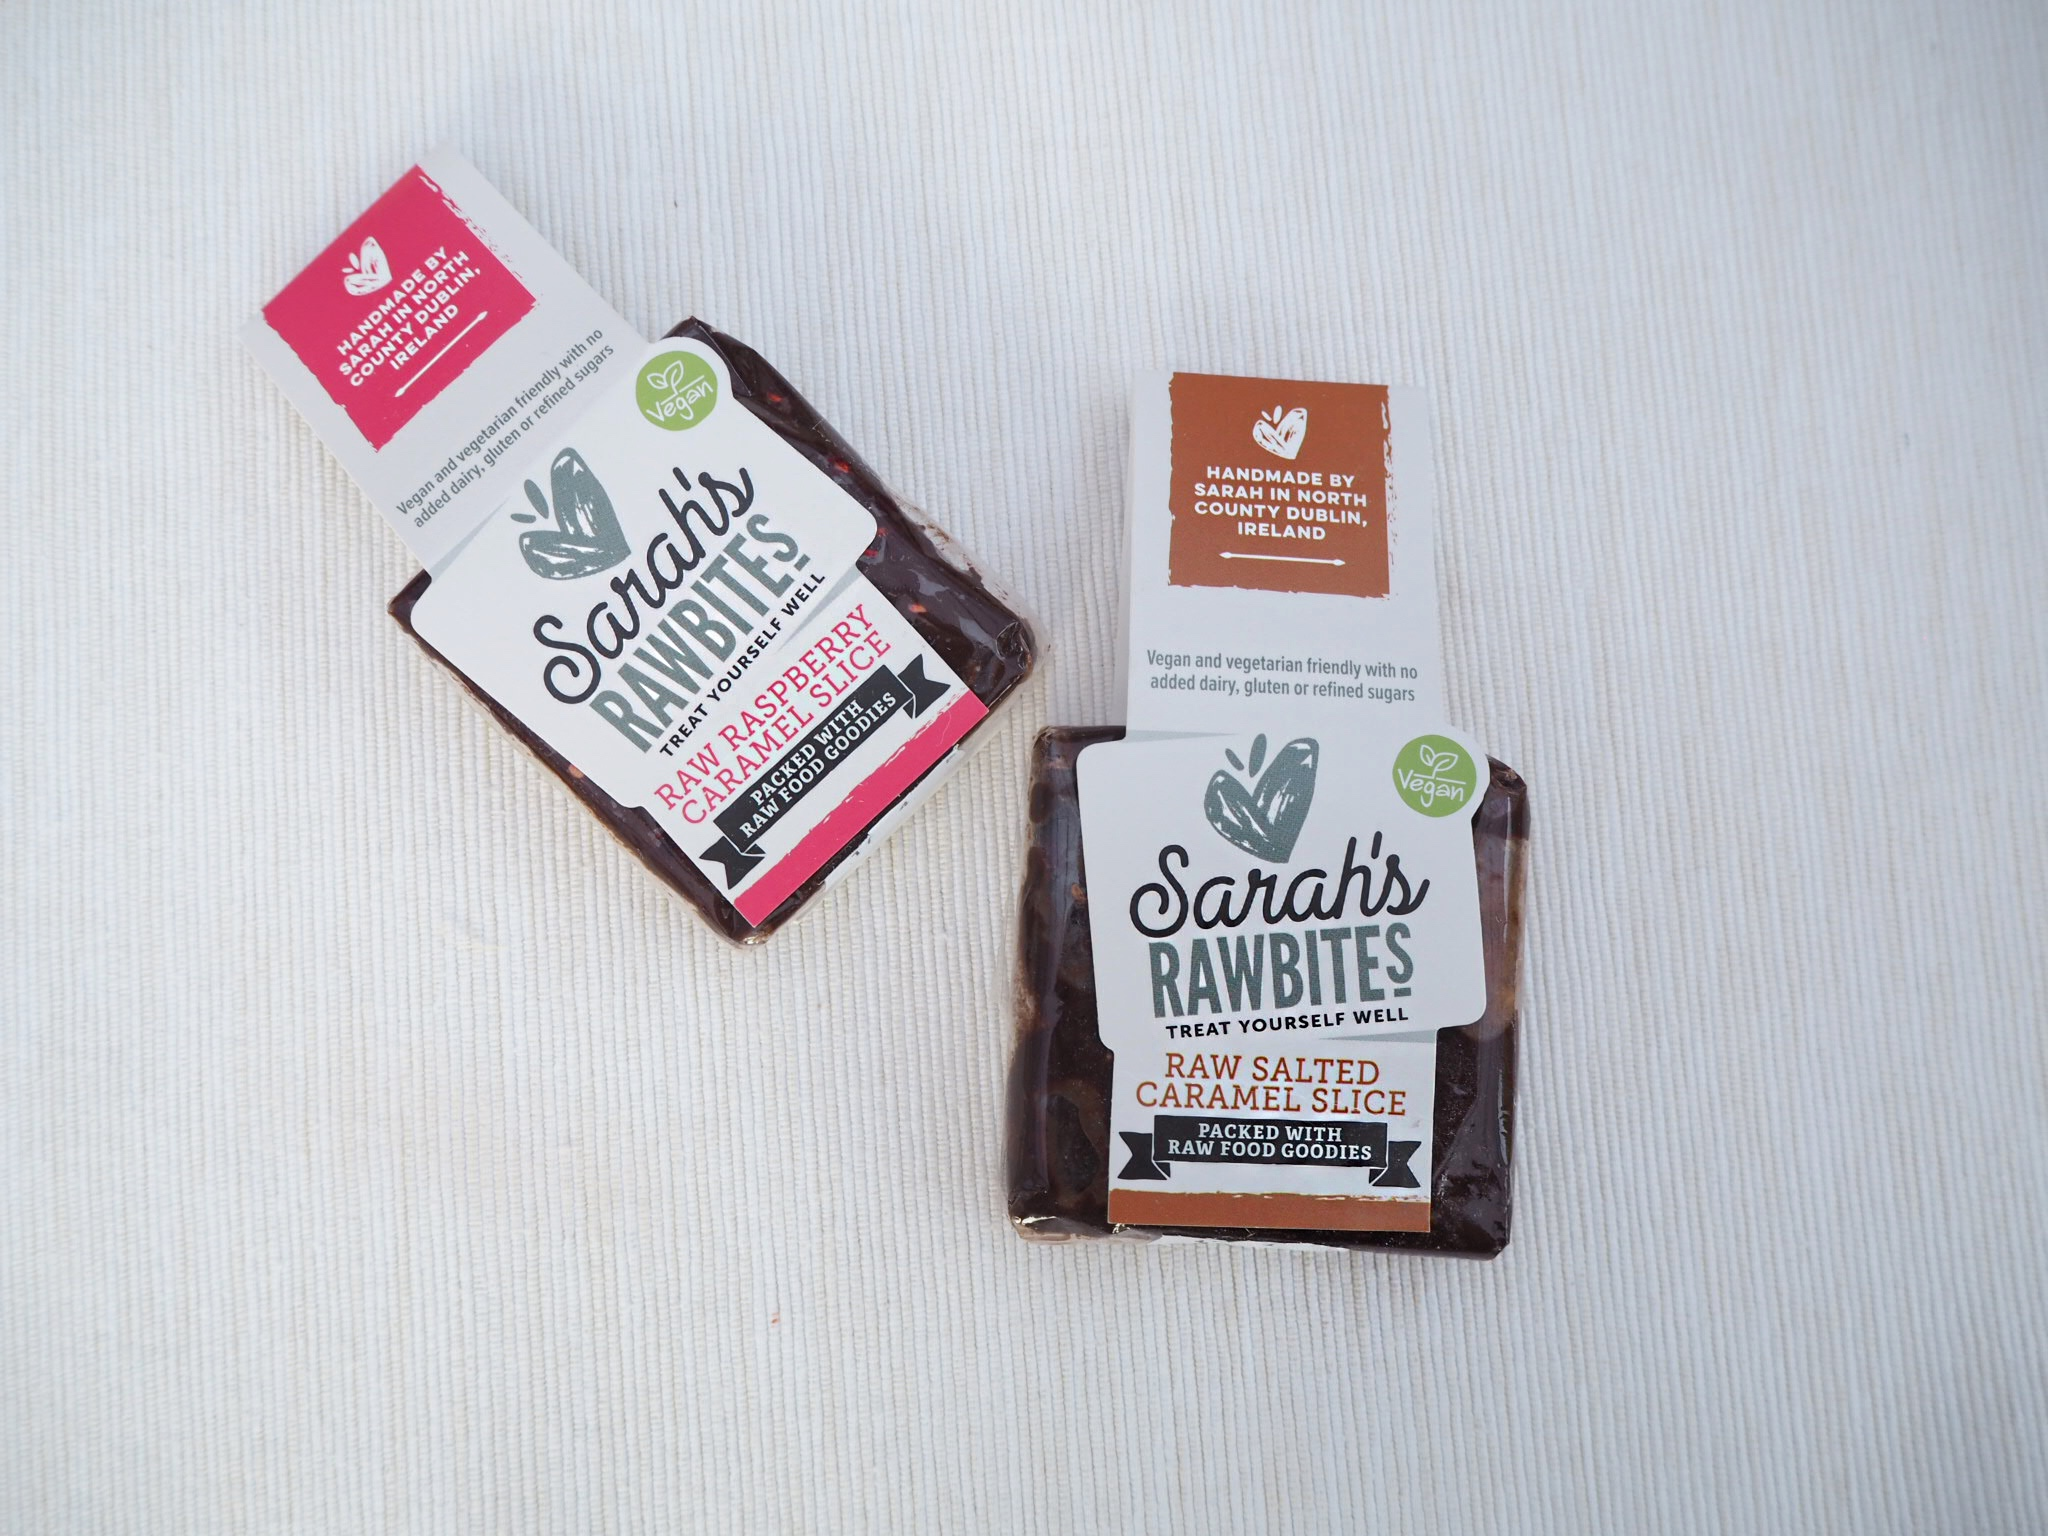 Sarah's Rawbites  - the perfect on-the-go snack!